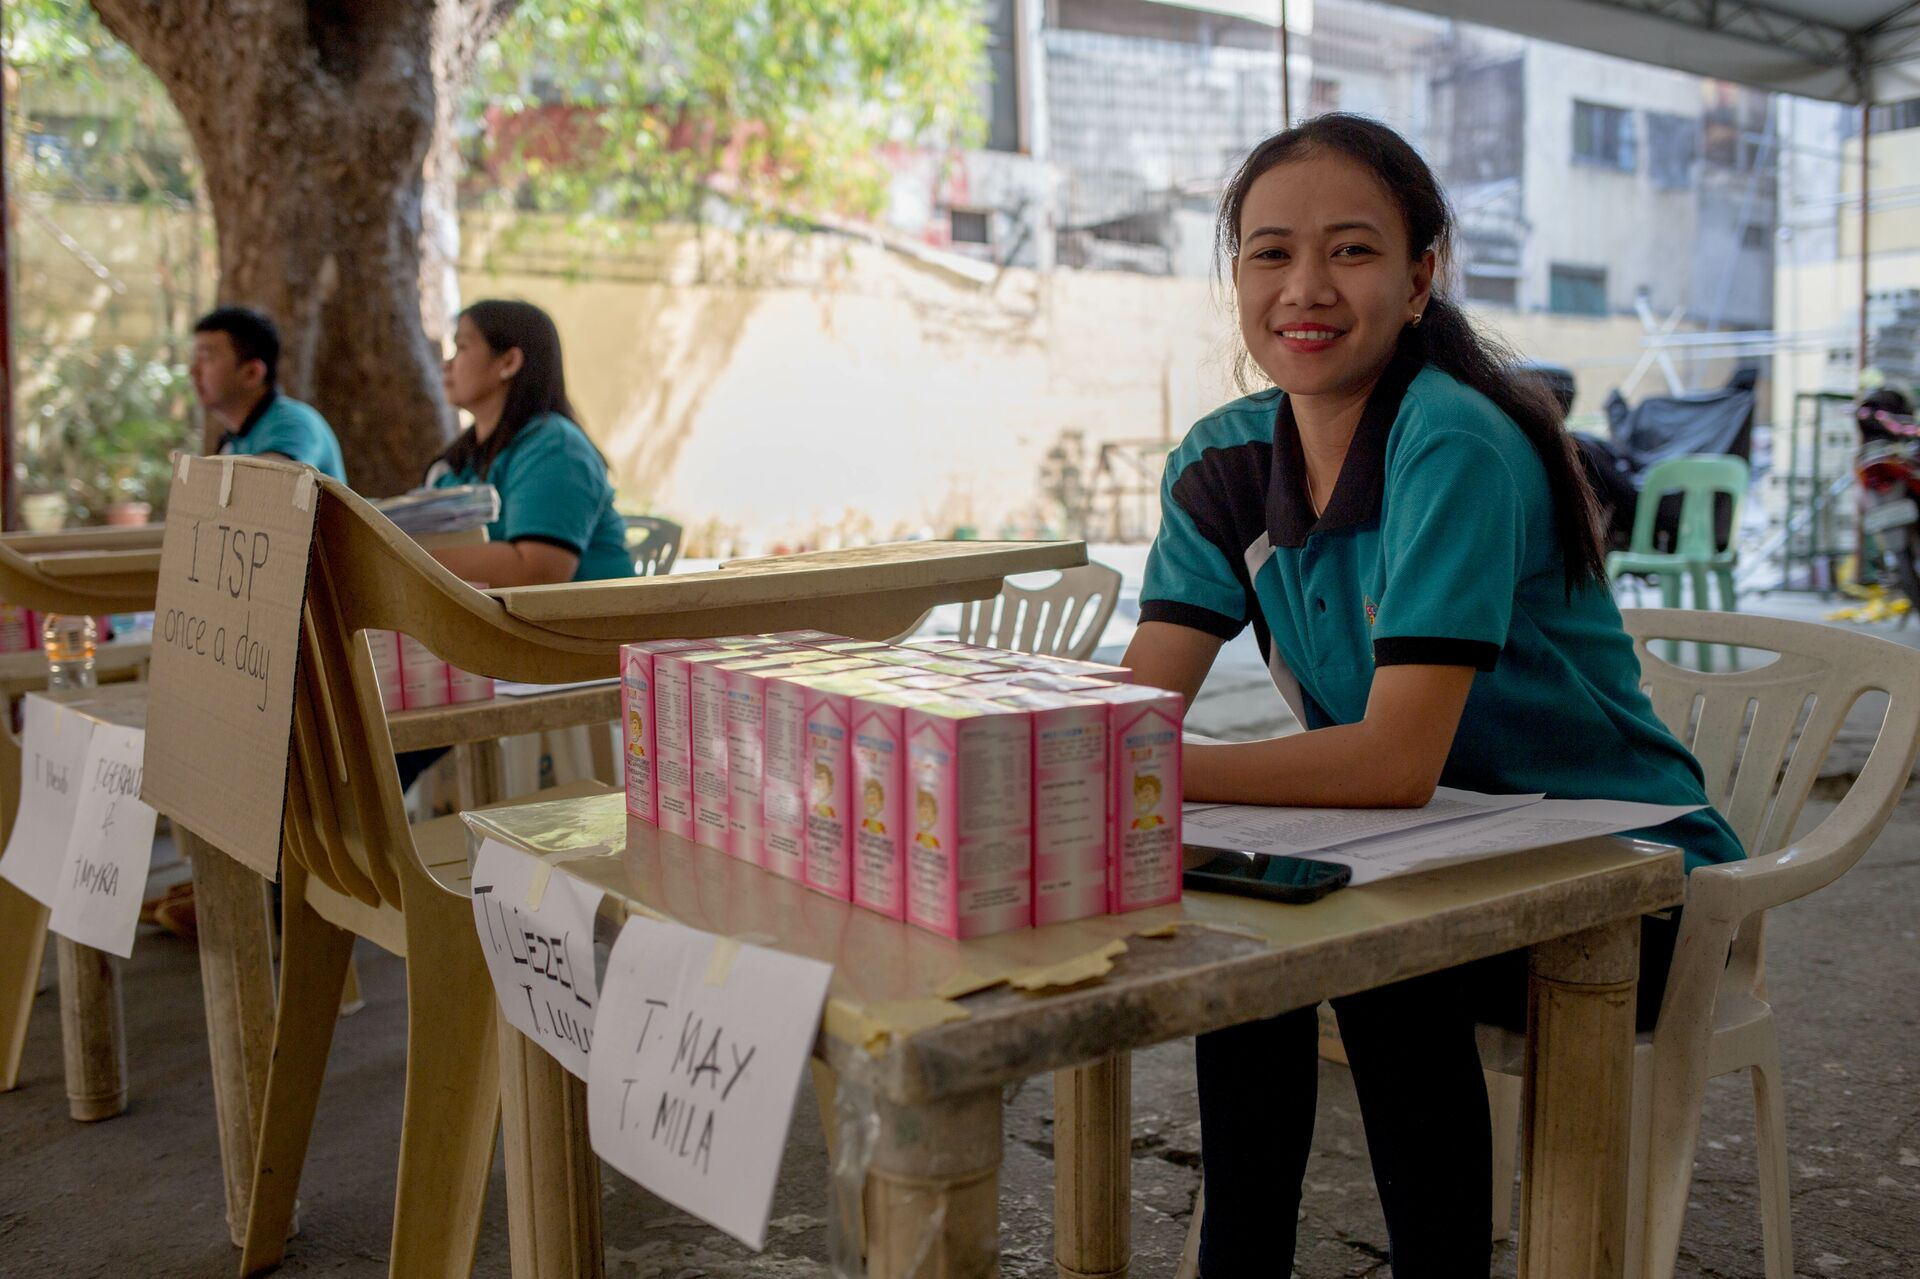 A Compassion Centre staff member sits at a table with packs of vitamins in front of her, ready to distribute to Compassion-assisted families.